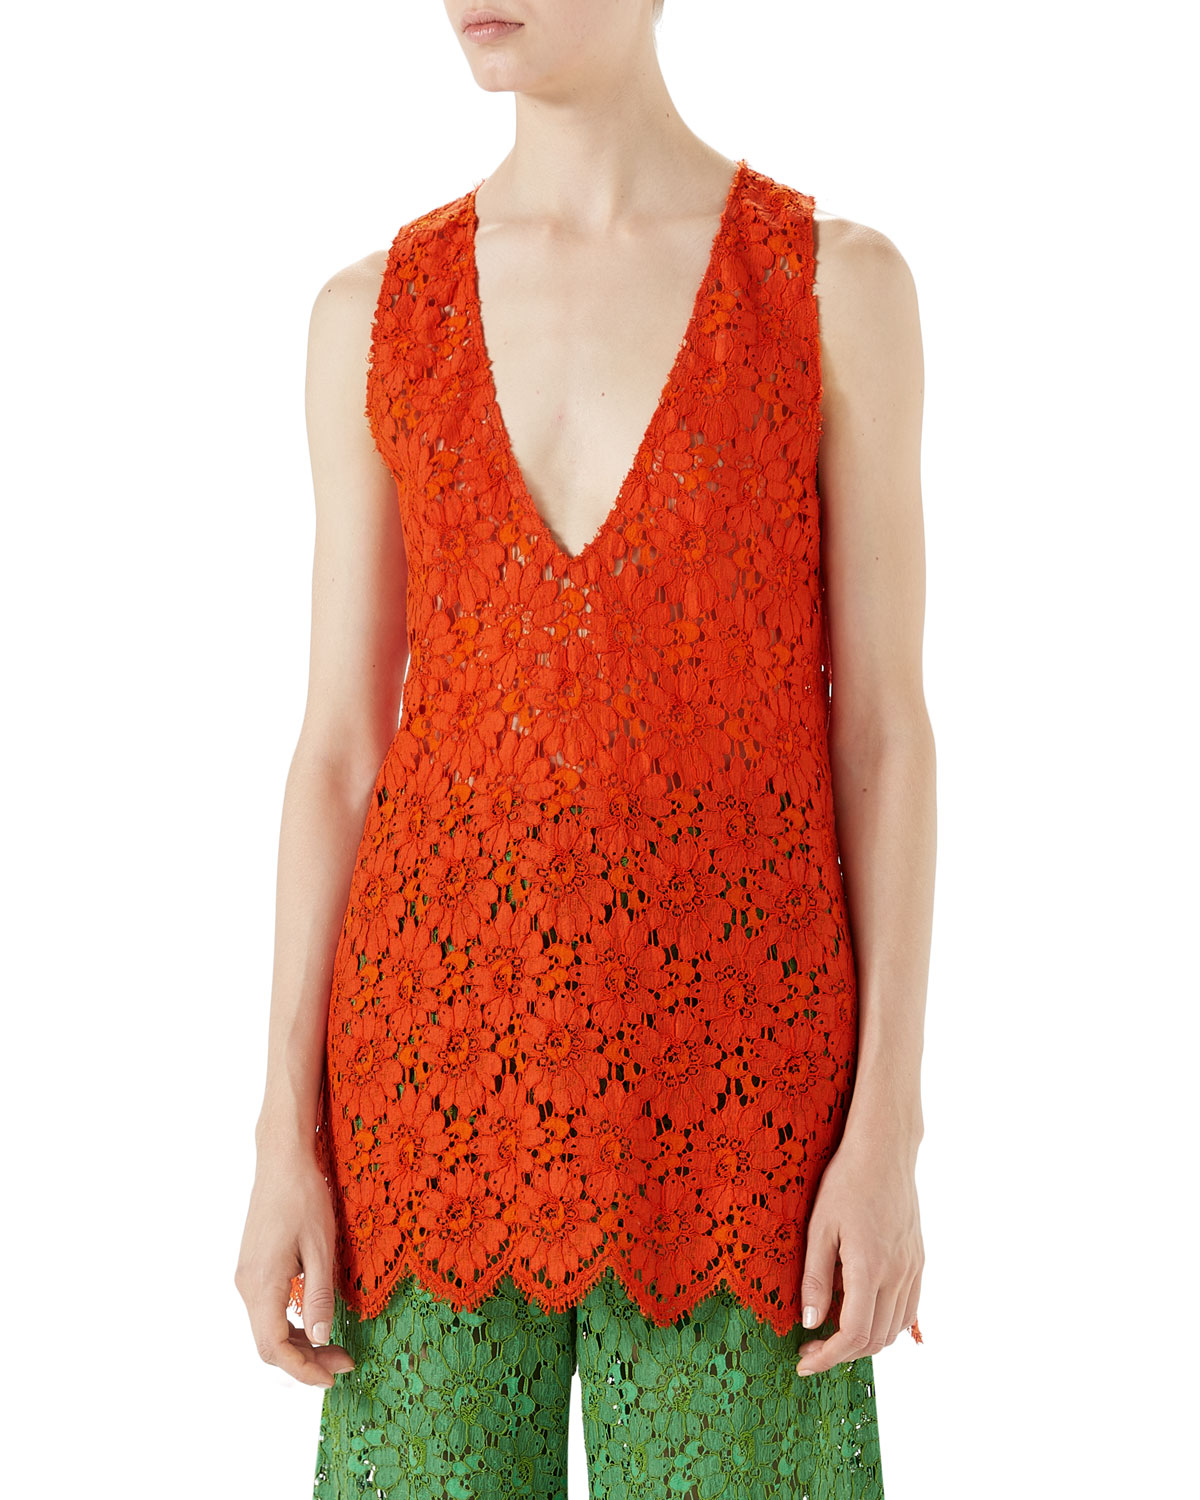 Gucci Floral-Lace Sleeveless Lace Top